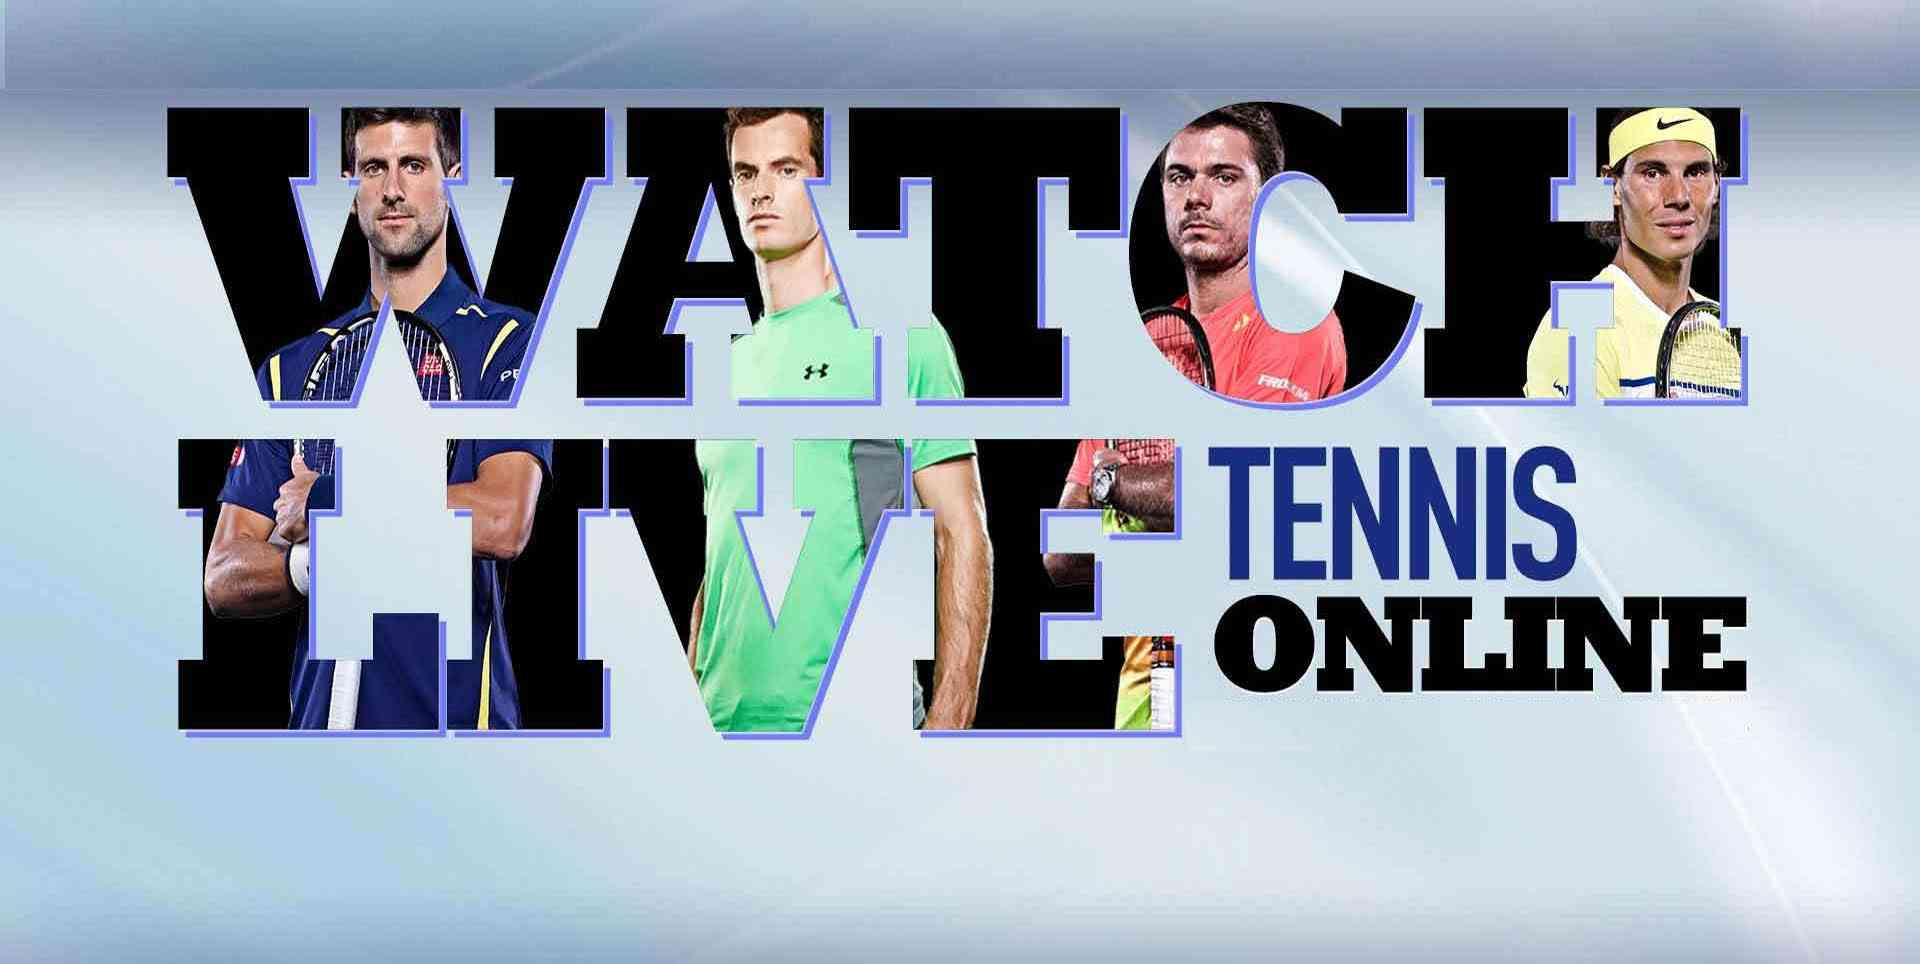 Watch V. Pospisil | J. Sock vs A. Peya | B. Soares Quarter Final Online